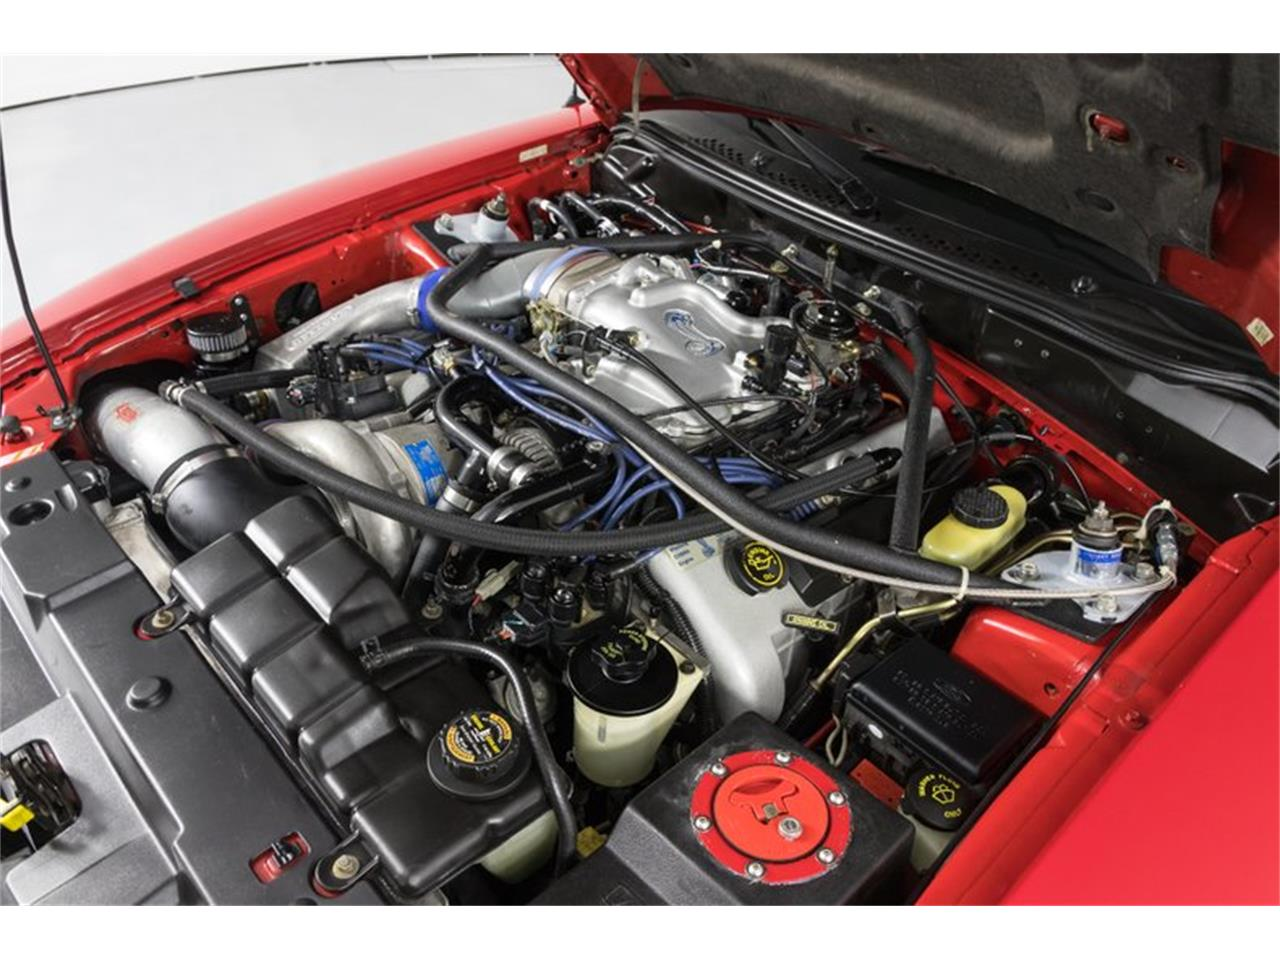 Large Picture of 1997 Ford Mustang located in St. Charles Missouri - $16,995.00 - Q83F